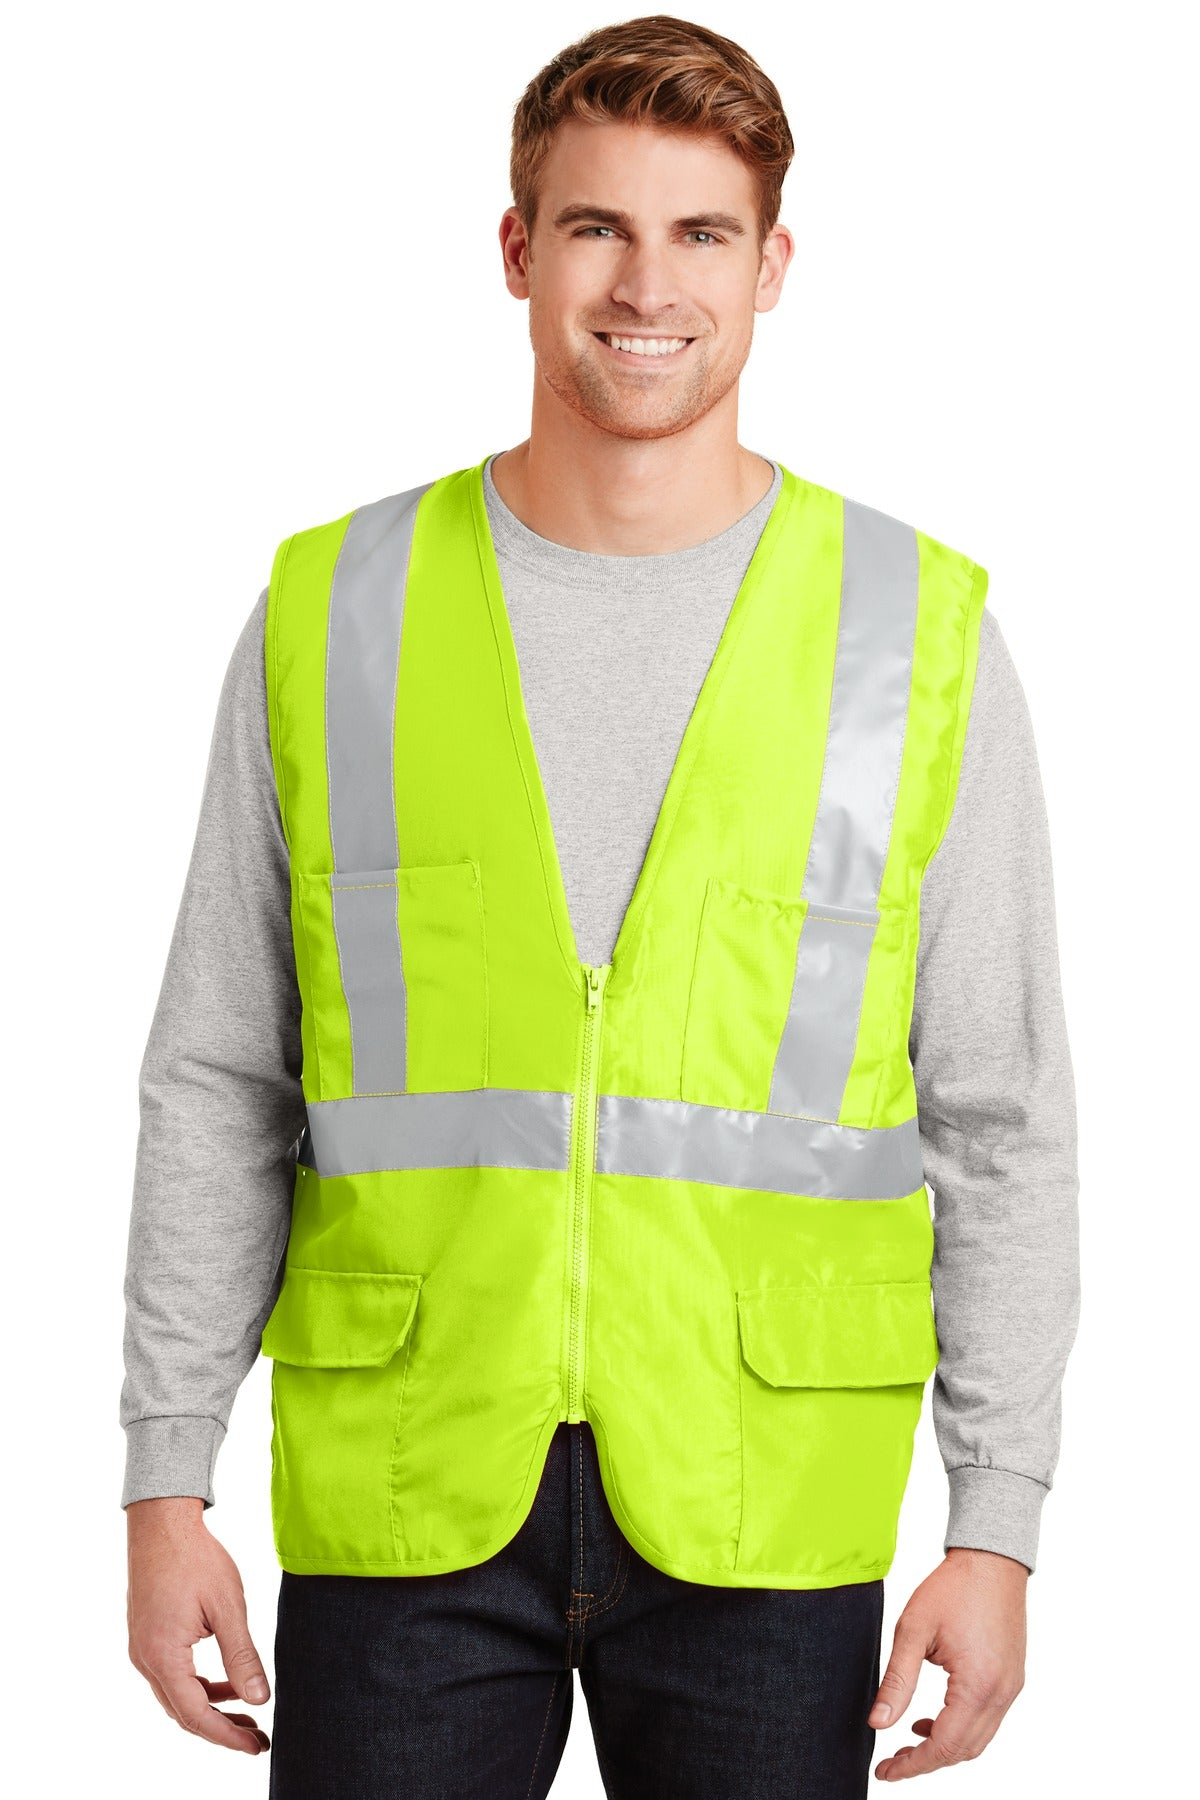 CornerStone® - ANSI 107 Class 2 Mesh Back Safety Vest. CSV405 - Aspire Zone